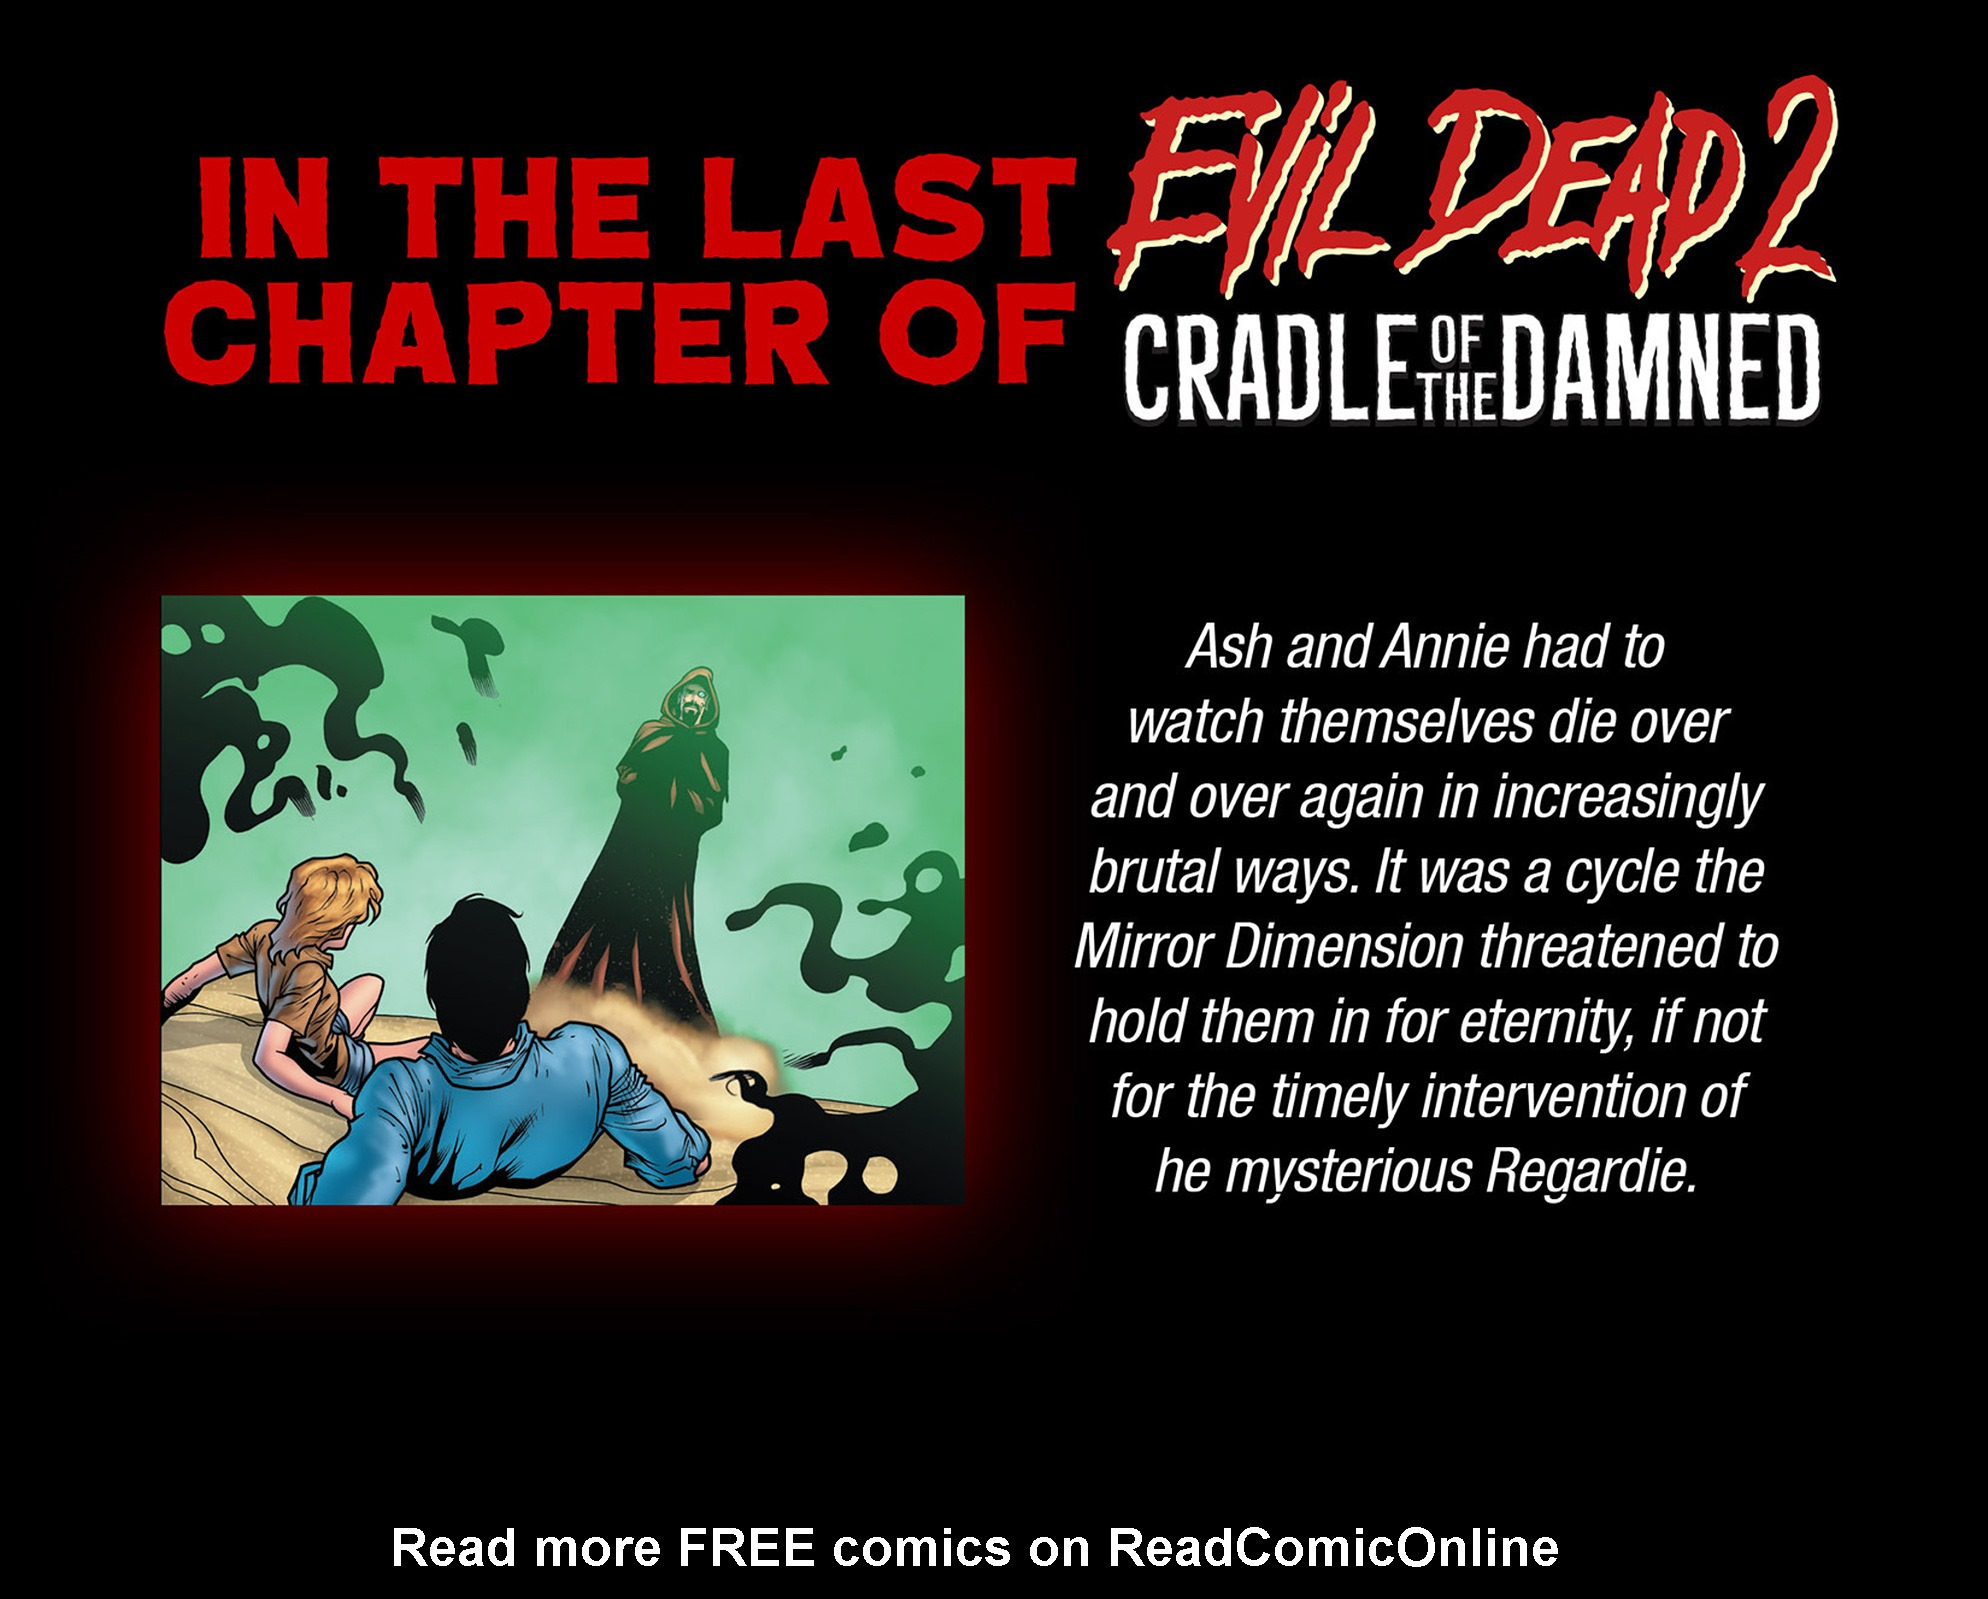 Read online Evil Dead 2: Cradle of the Damned comic -  Issue #4 - 3